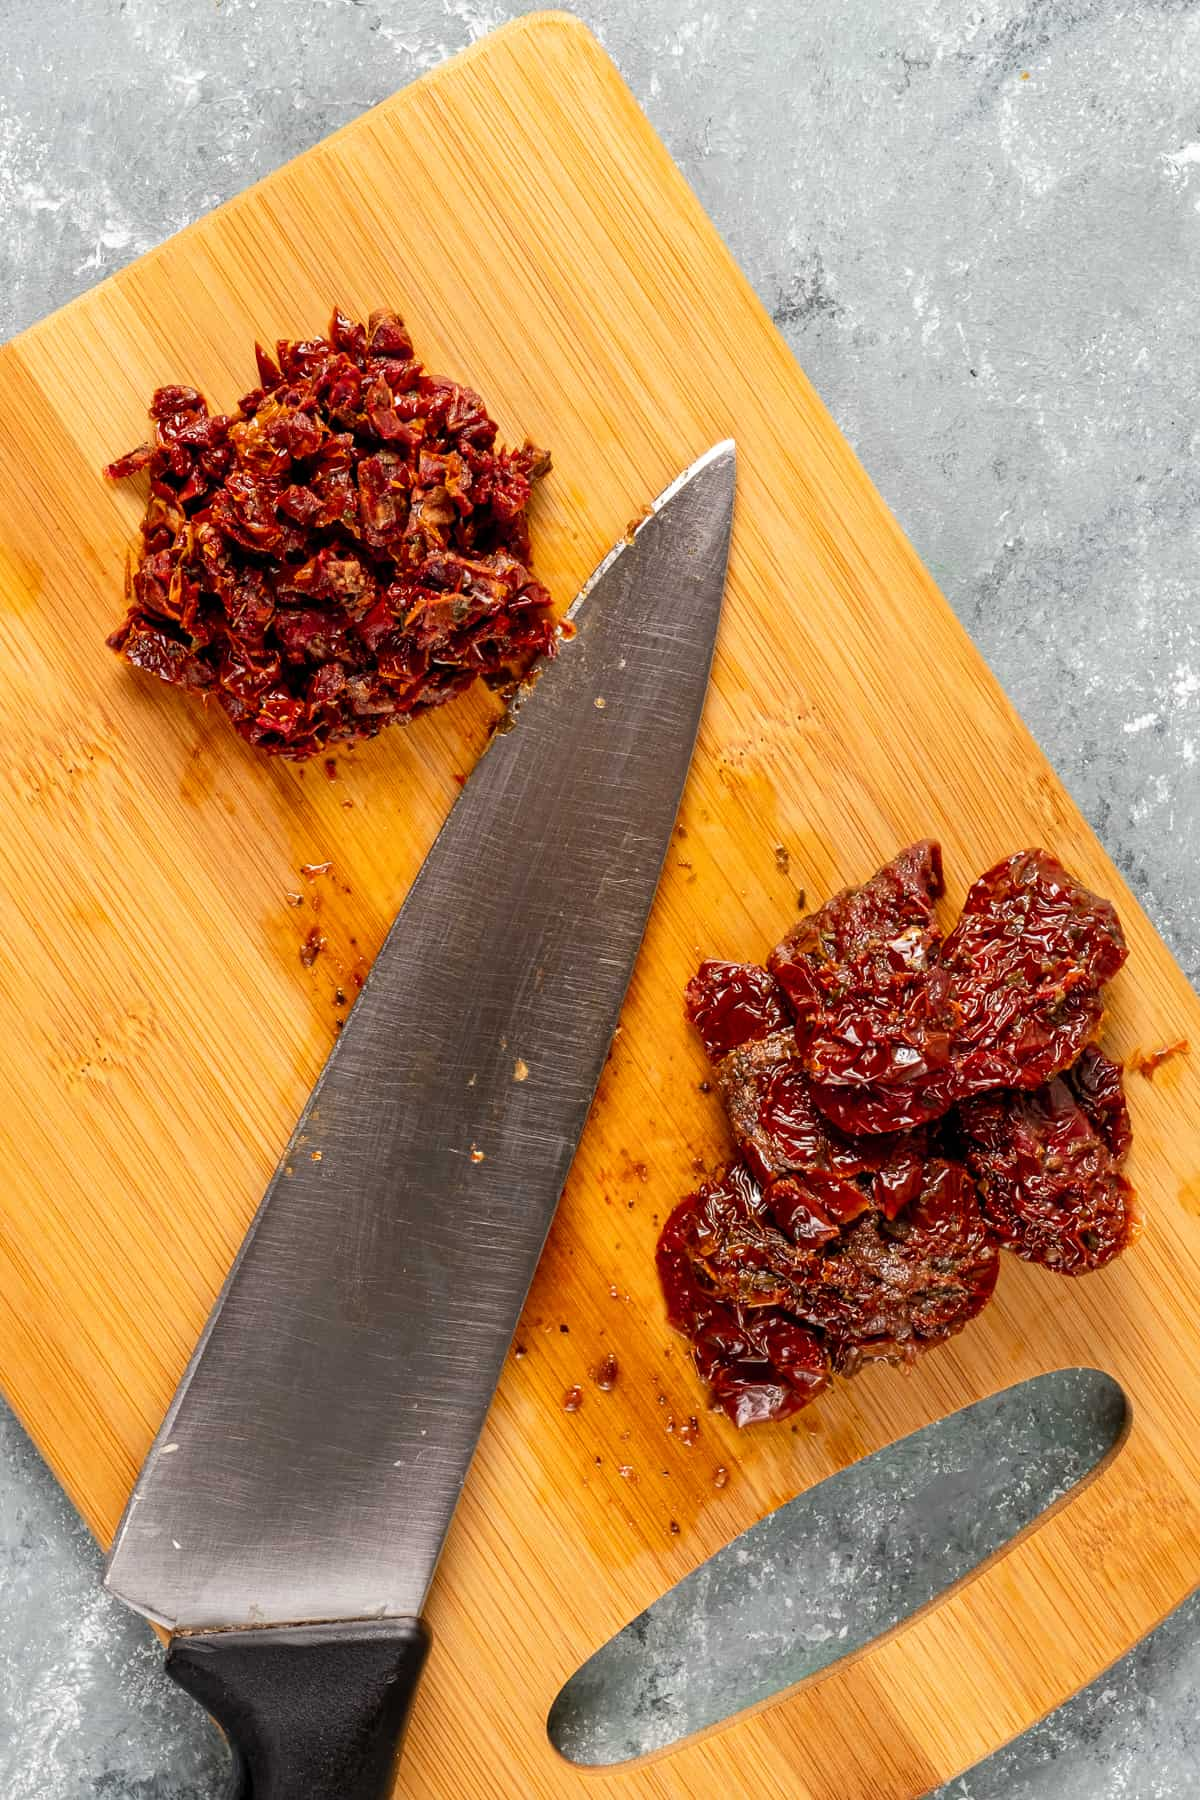 Sun-dried tomatoes whole and finely chopped on a wooden board and a knife in between them.